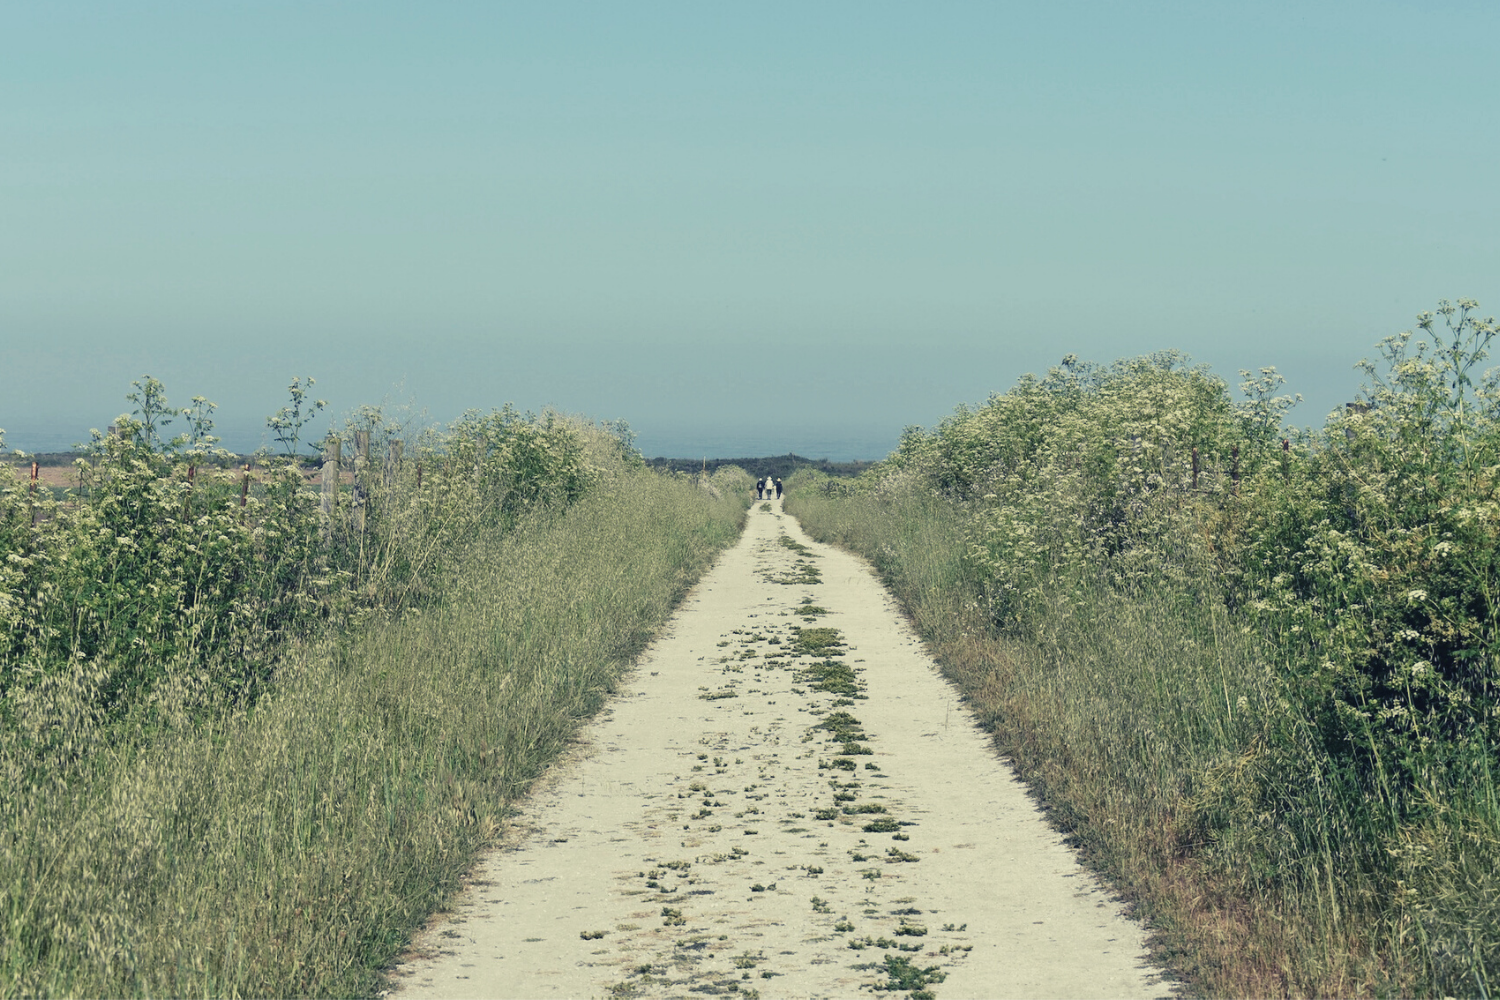 A view down a long, straight dirt road and into the distance